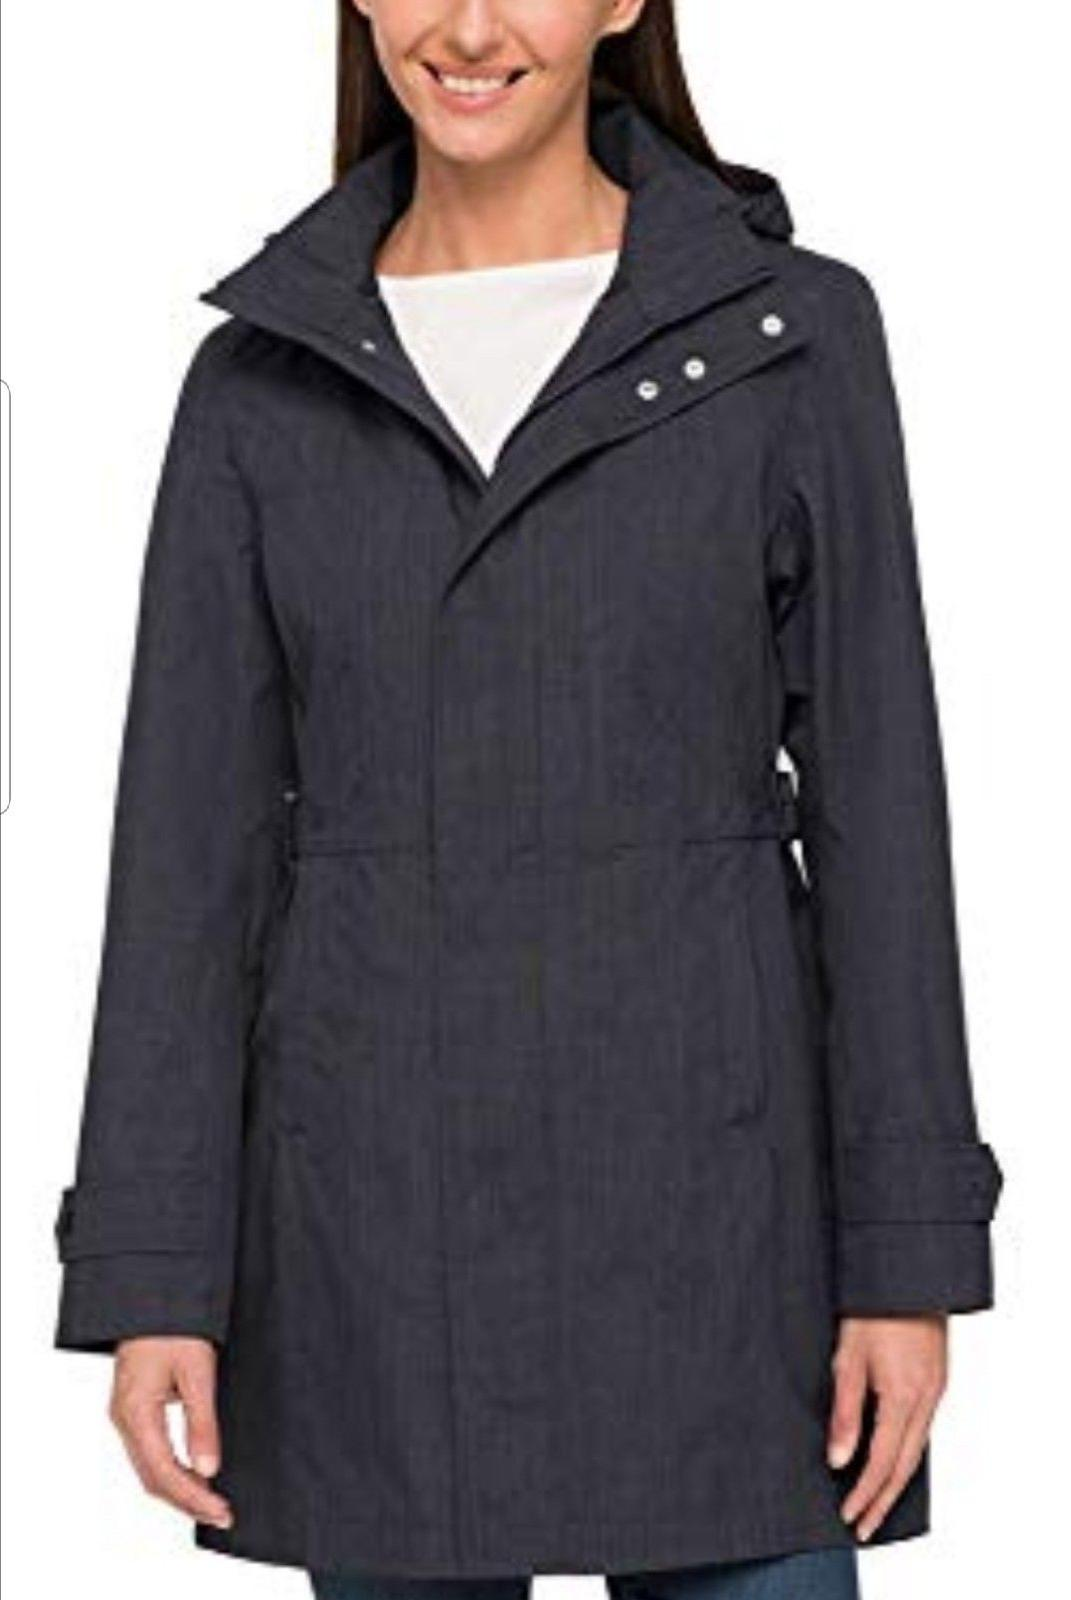 NEW VARIETY Signature Trench Hood COLOR